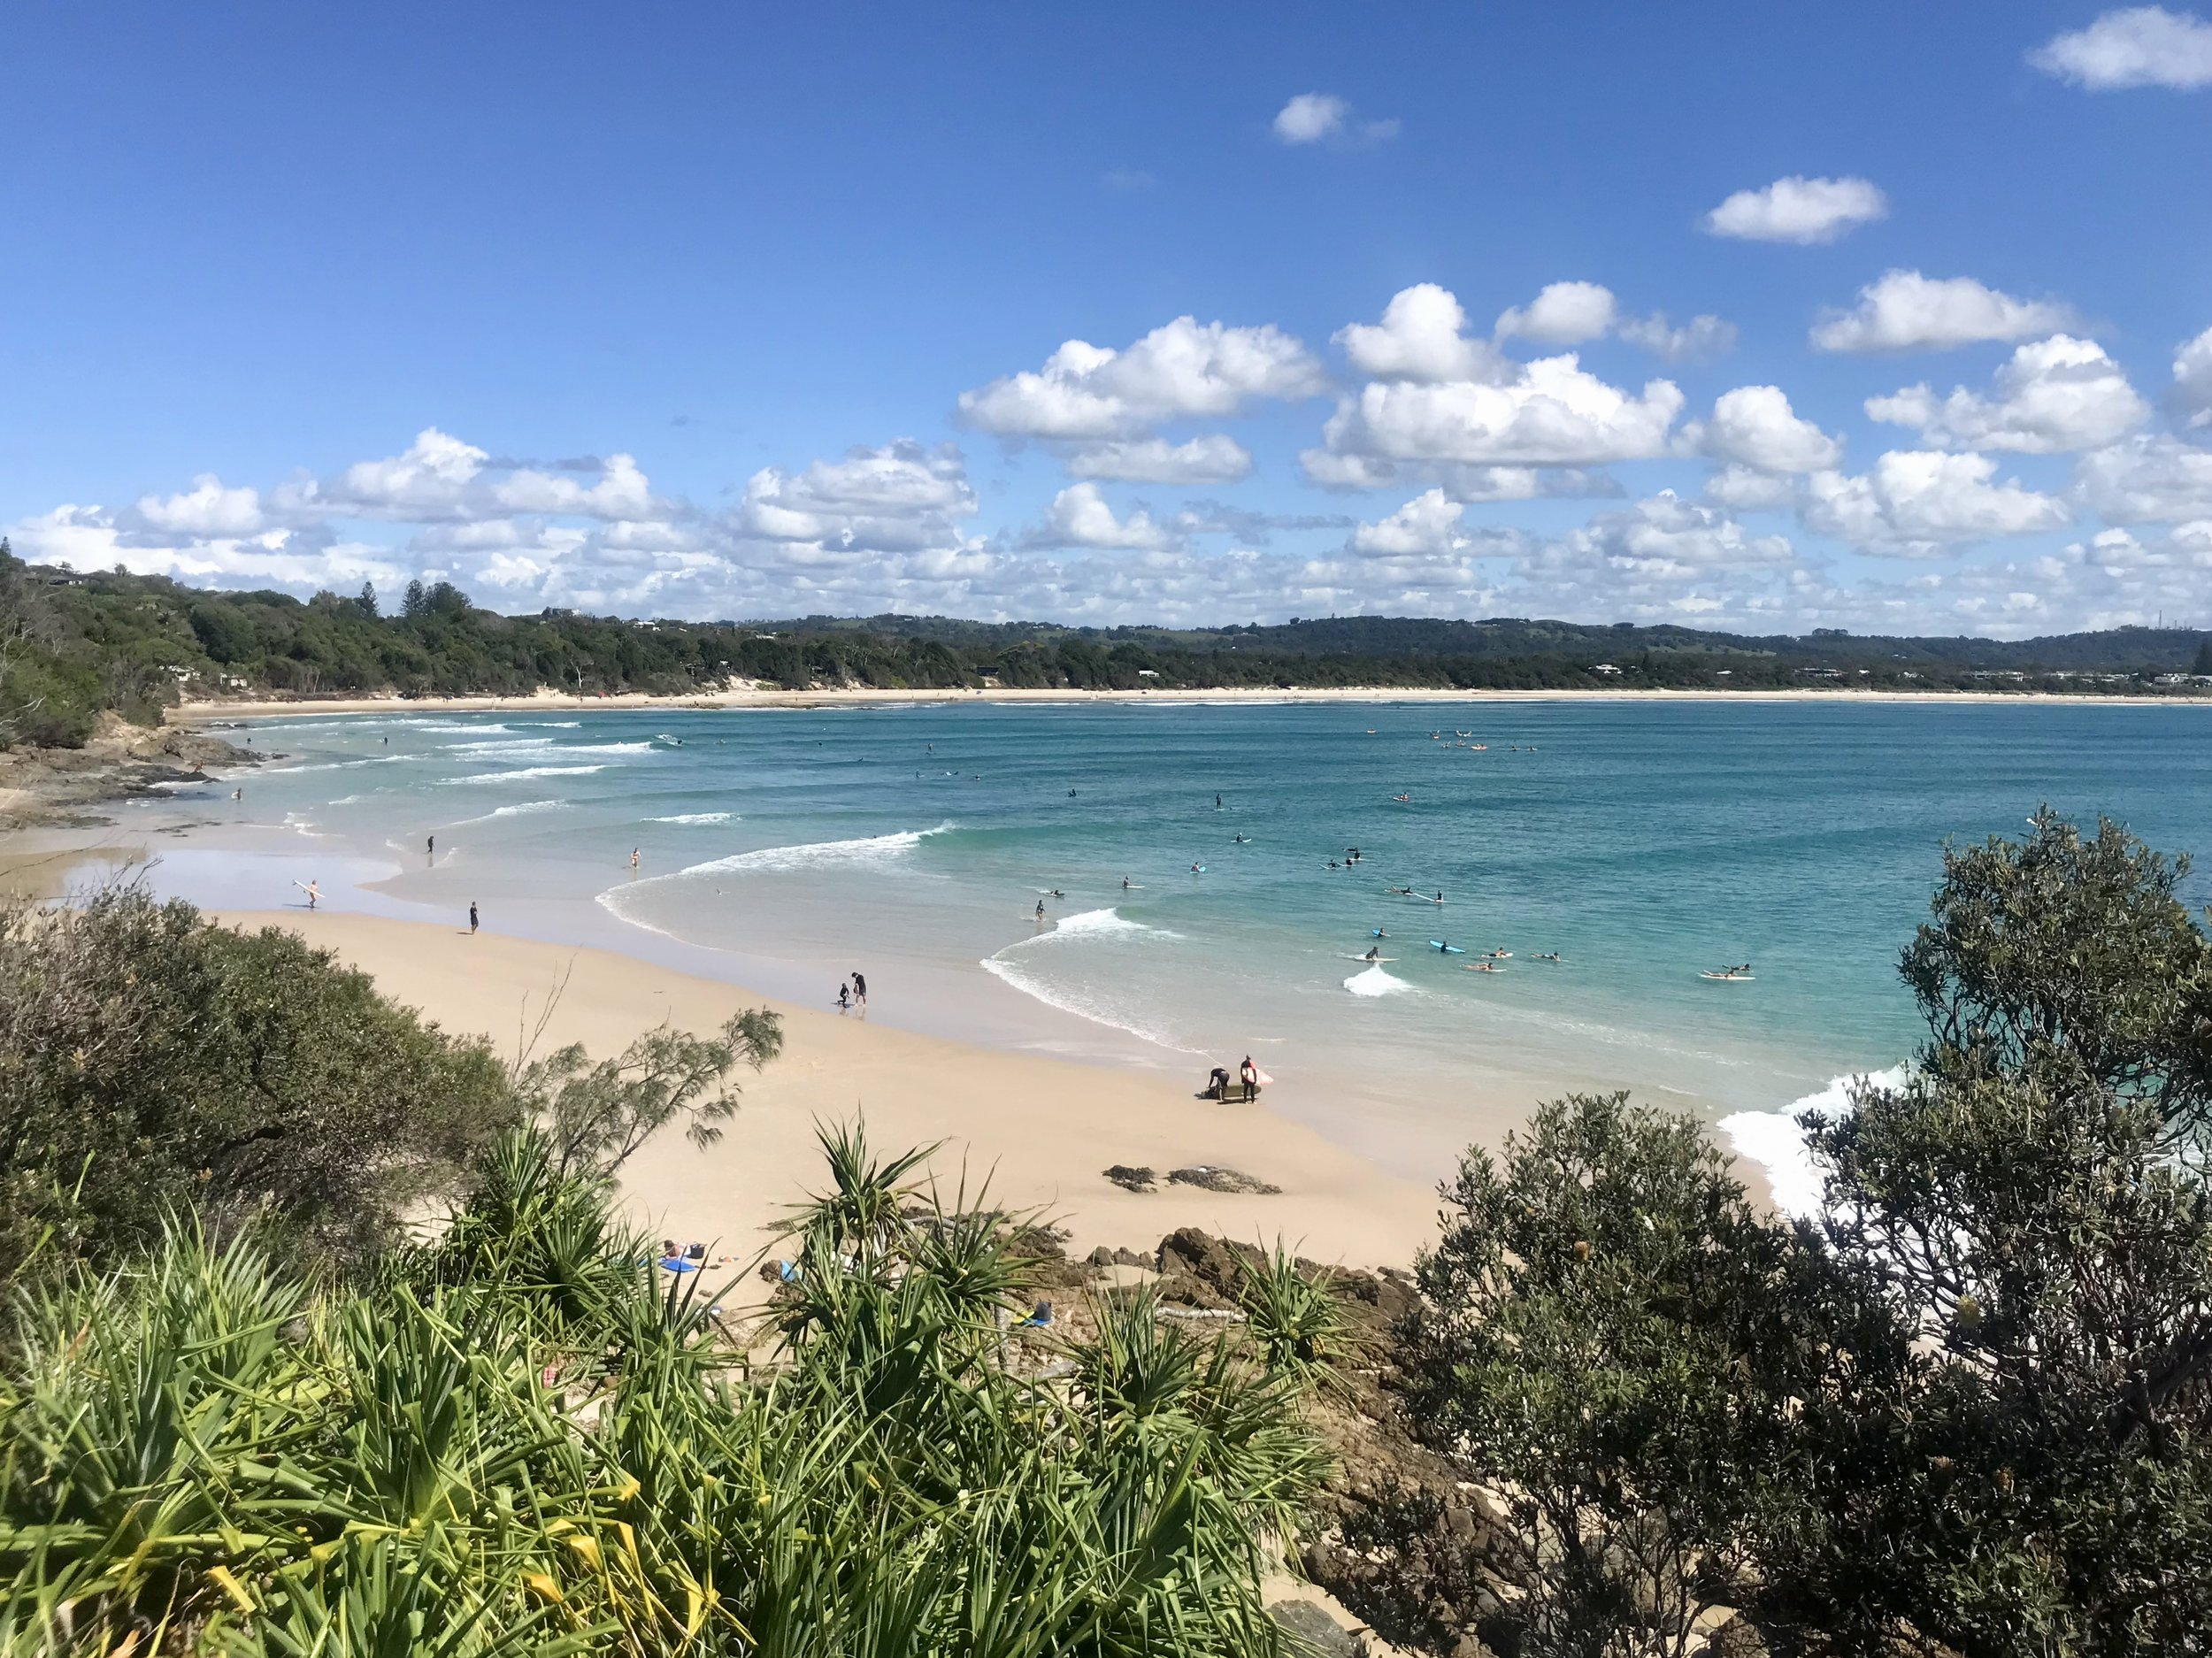 One of the many stunning views found in beautiful Byron Bay.